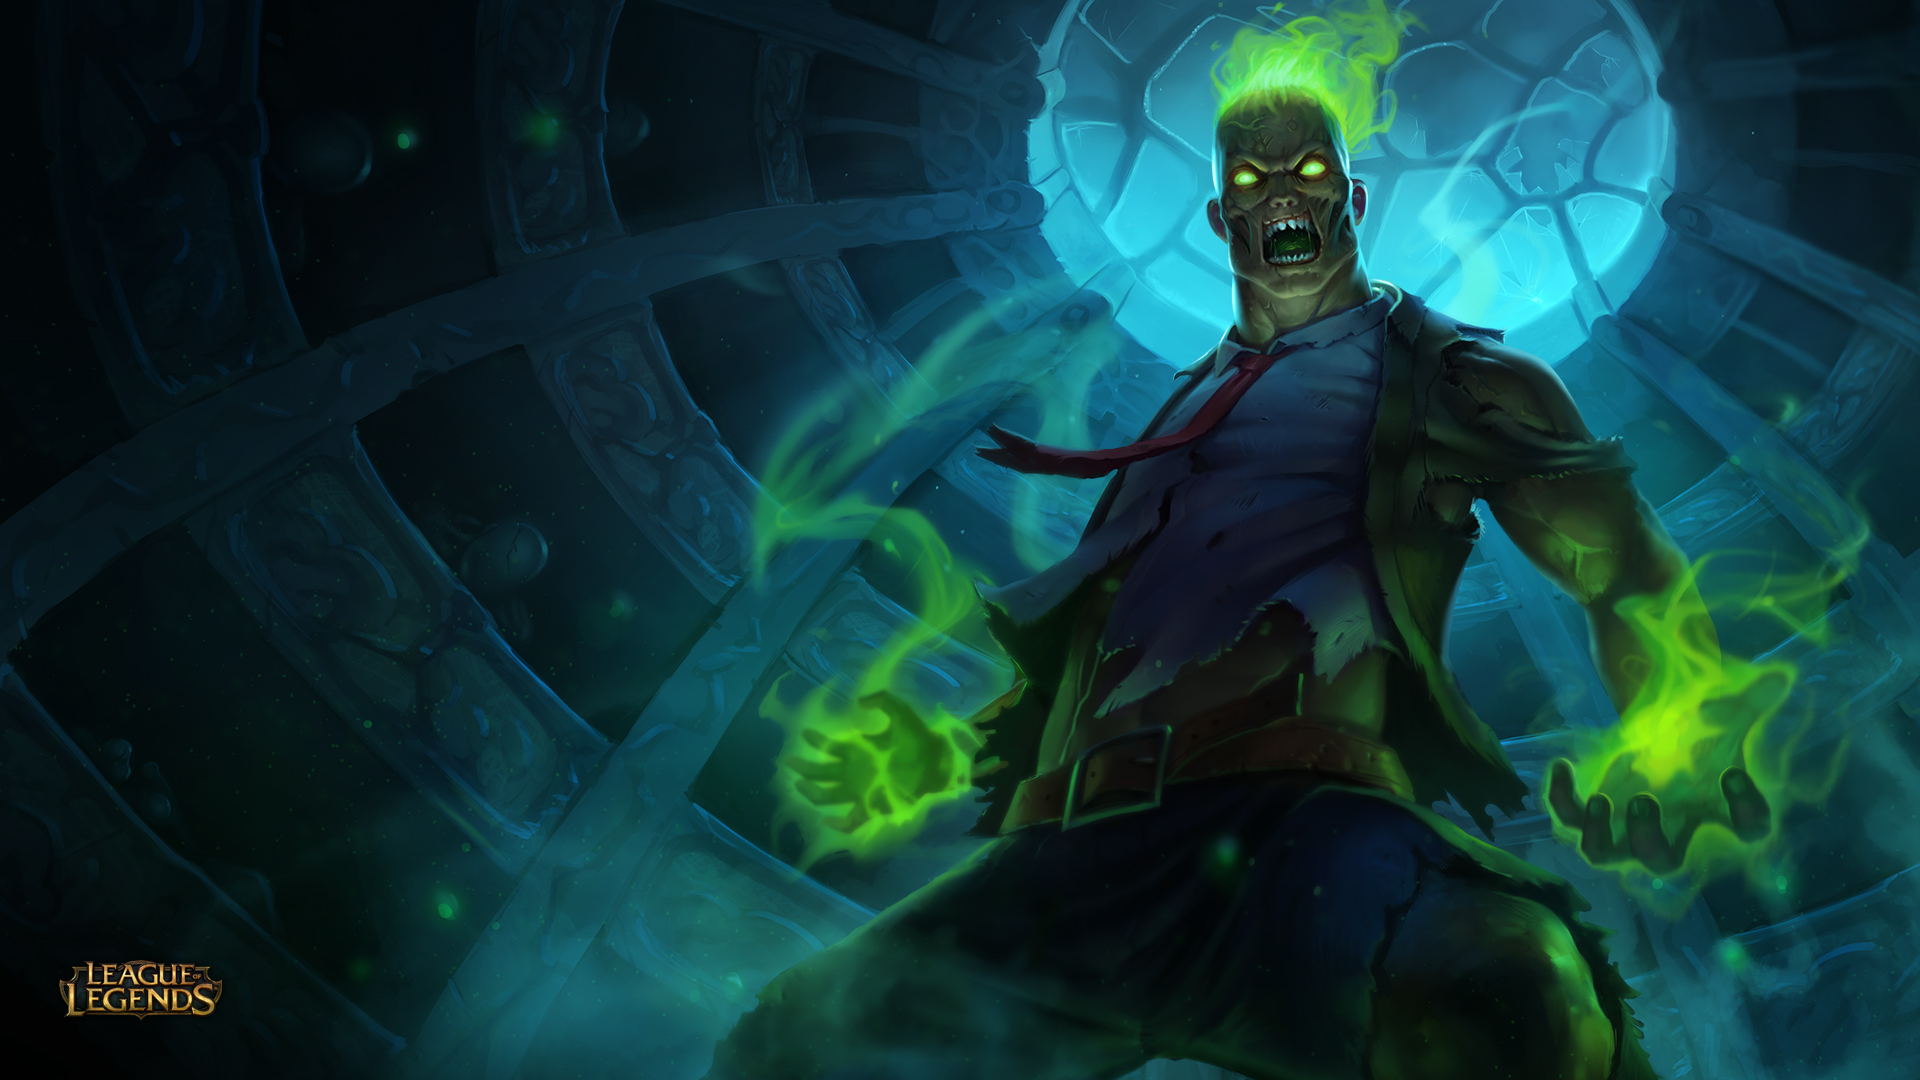 Zombie Brand League Of Legends Wallpapers HD 1920x1080